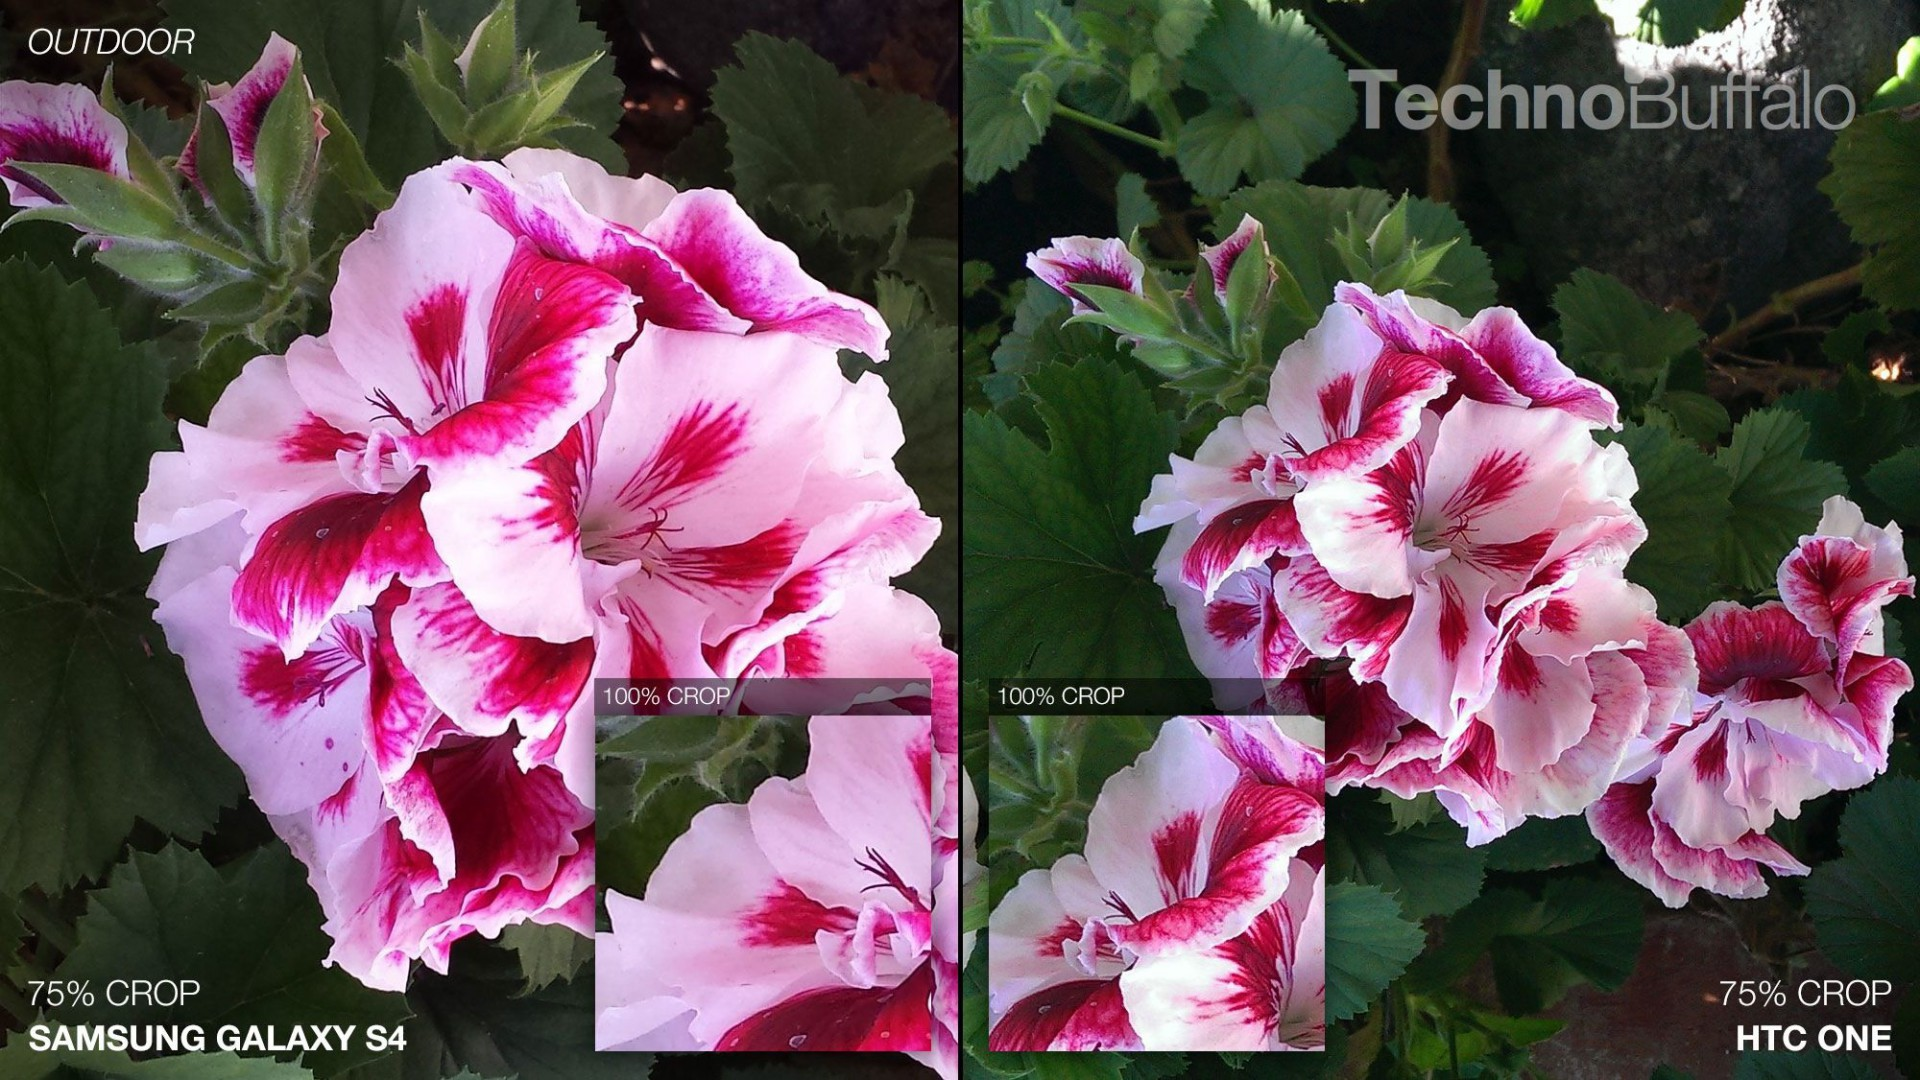 Samsung-Galaxy-S4-vs-HTC-One-Camera-Comparison-Outdoor-Flowers